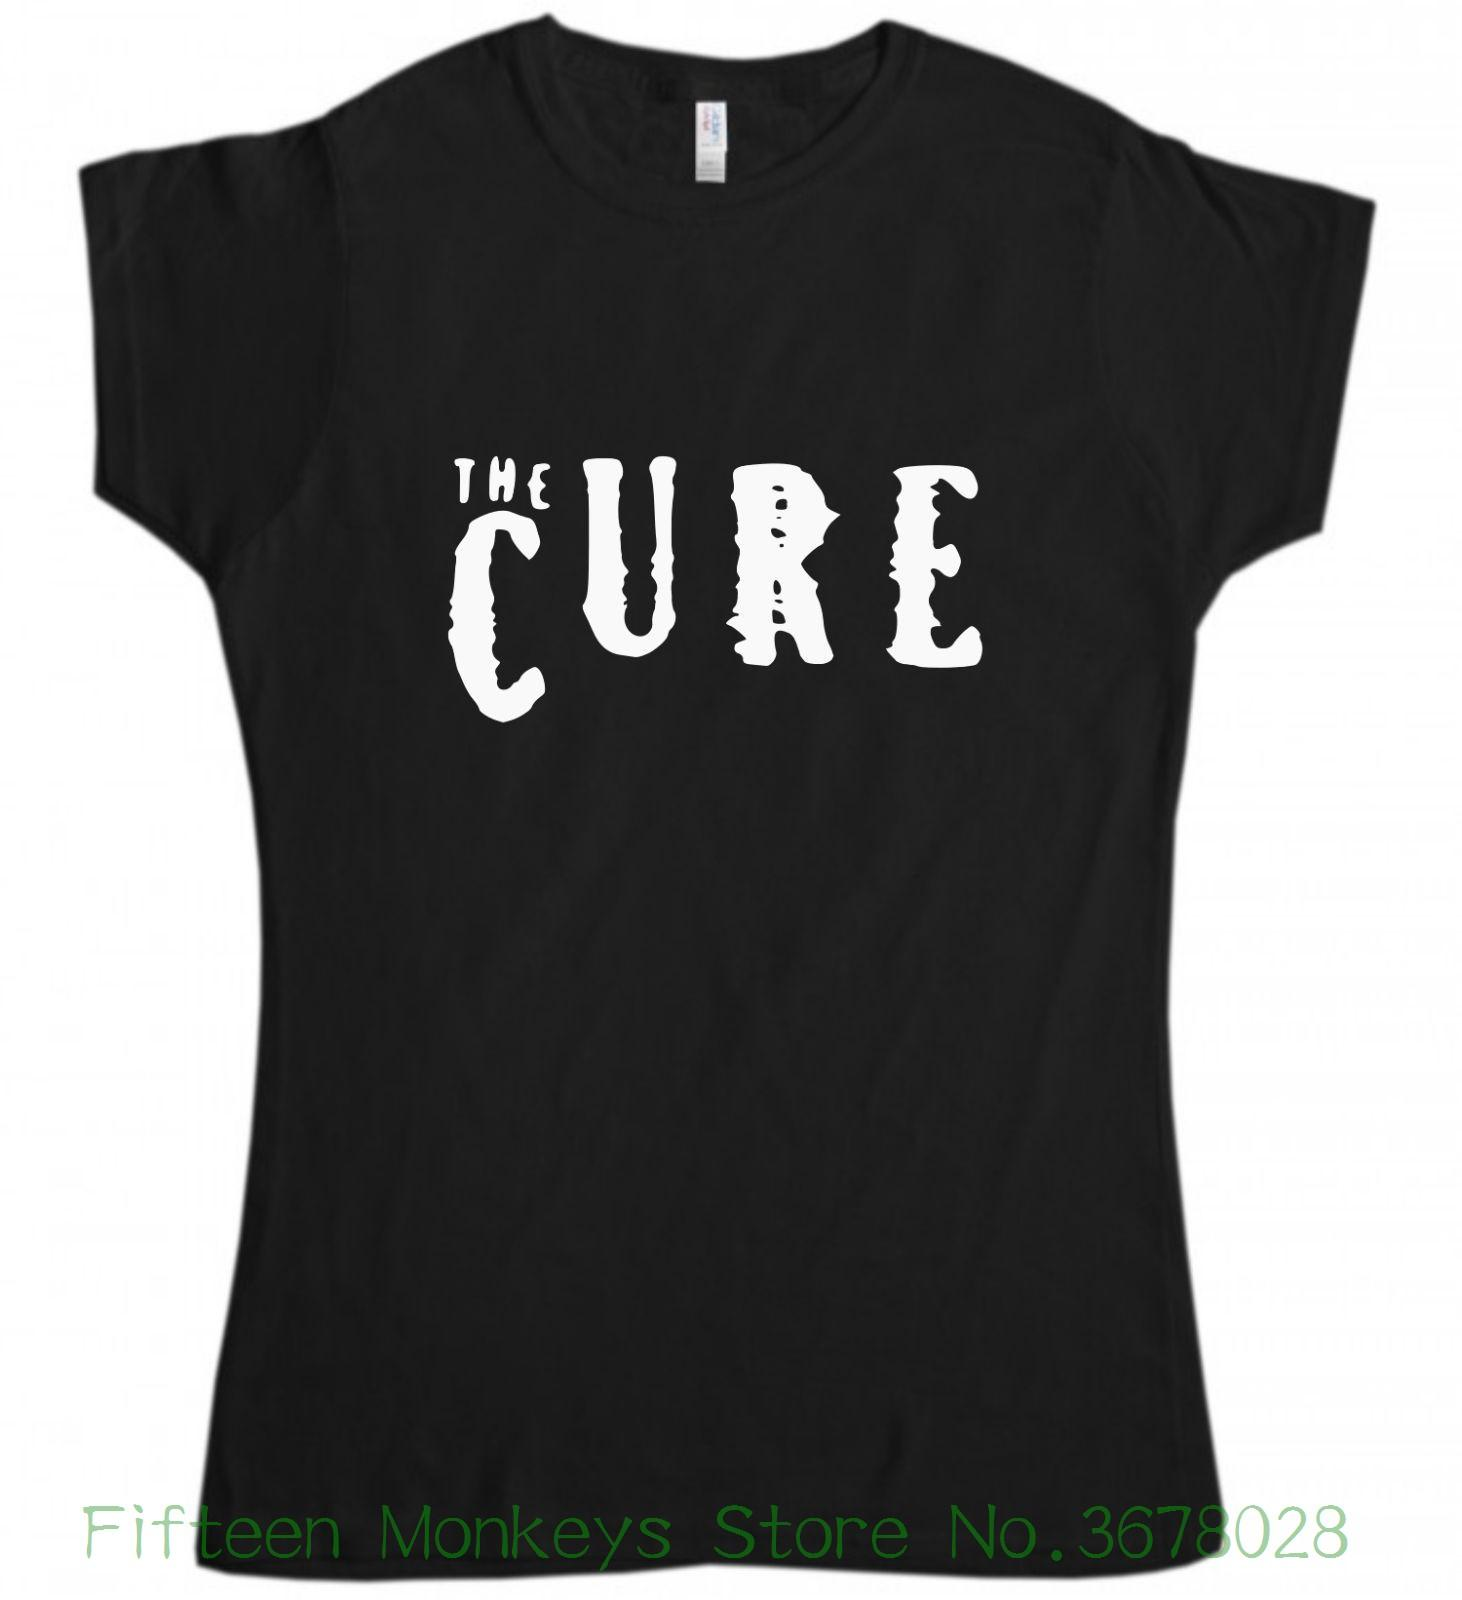 Women s Tee The Cure T-shirt New Black Ladies Womens Girls T Shirt S Xl  Rock Top Cool Ladies Tees Online with  28.54 Piece on Fifteenmonkeysstore s  Store ... 8fdbcd4aae